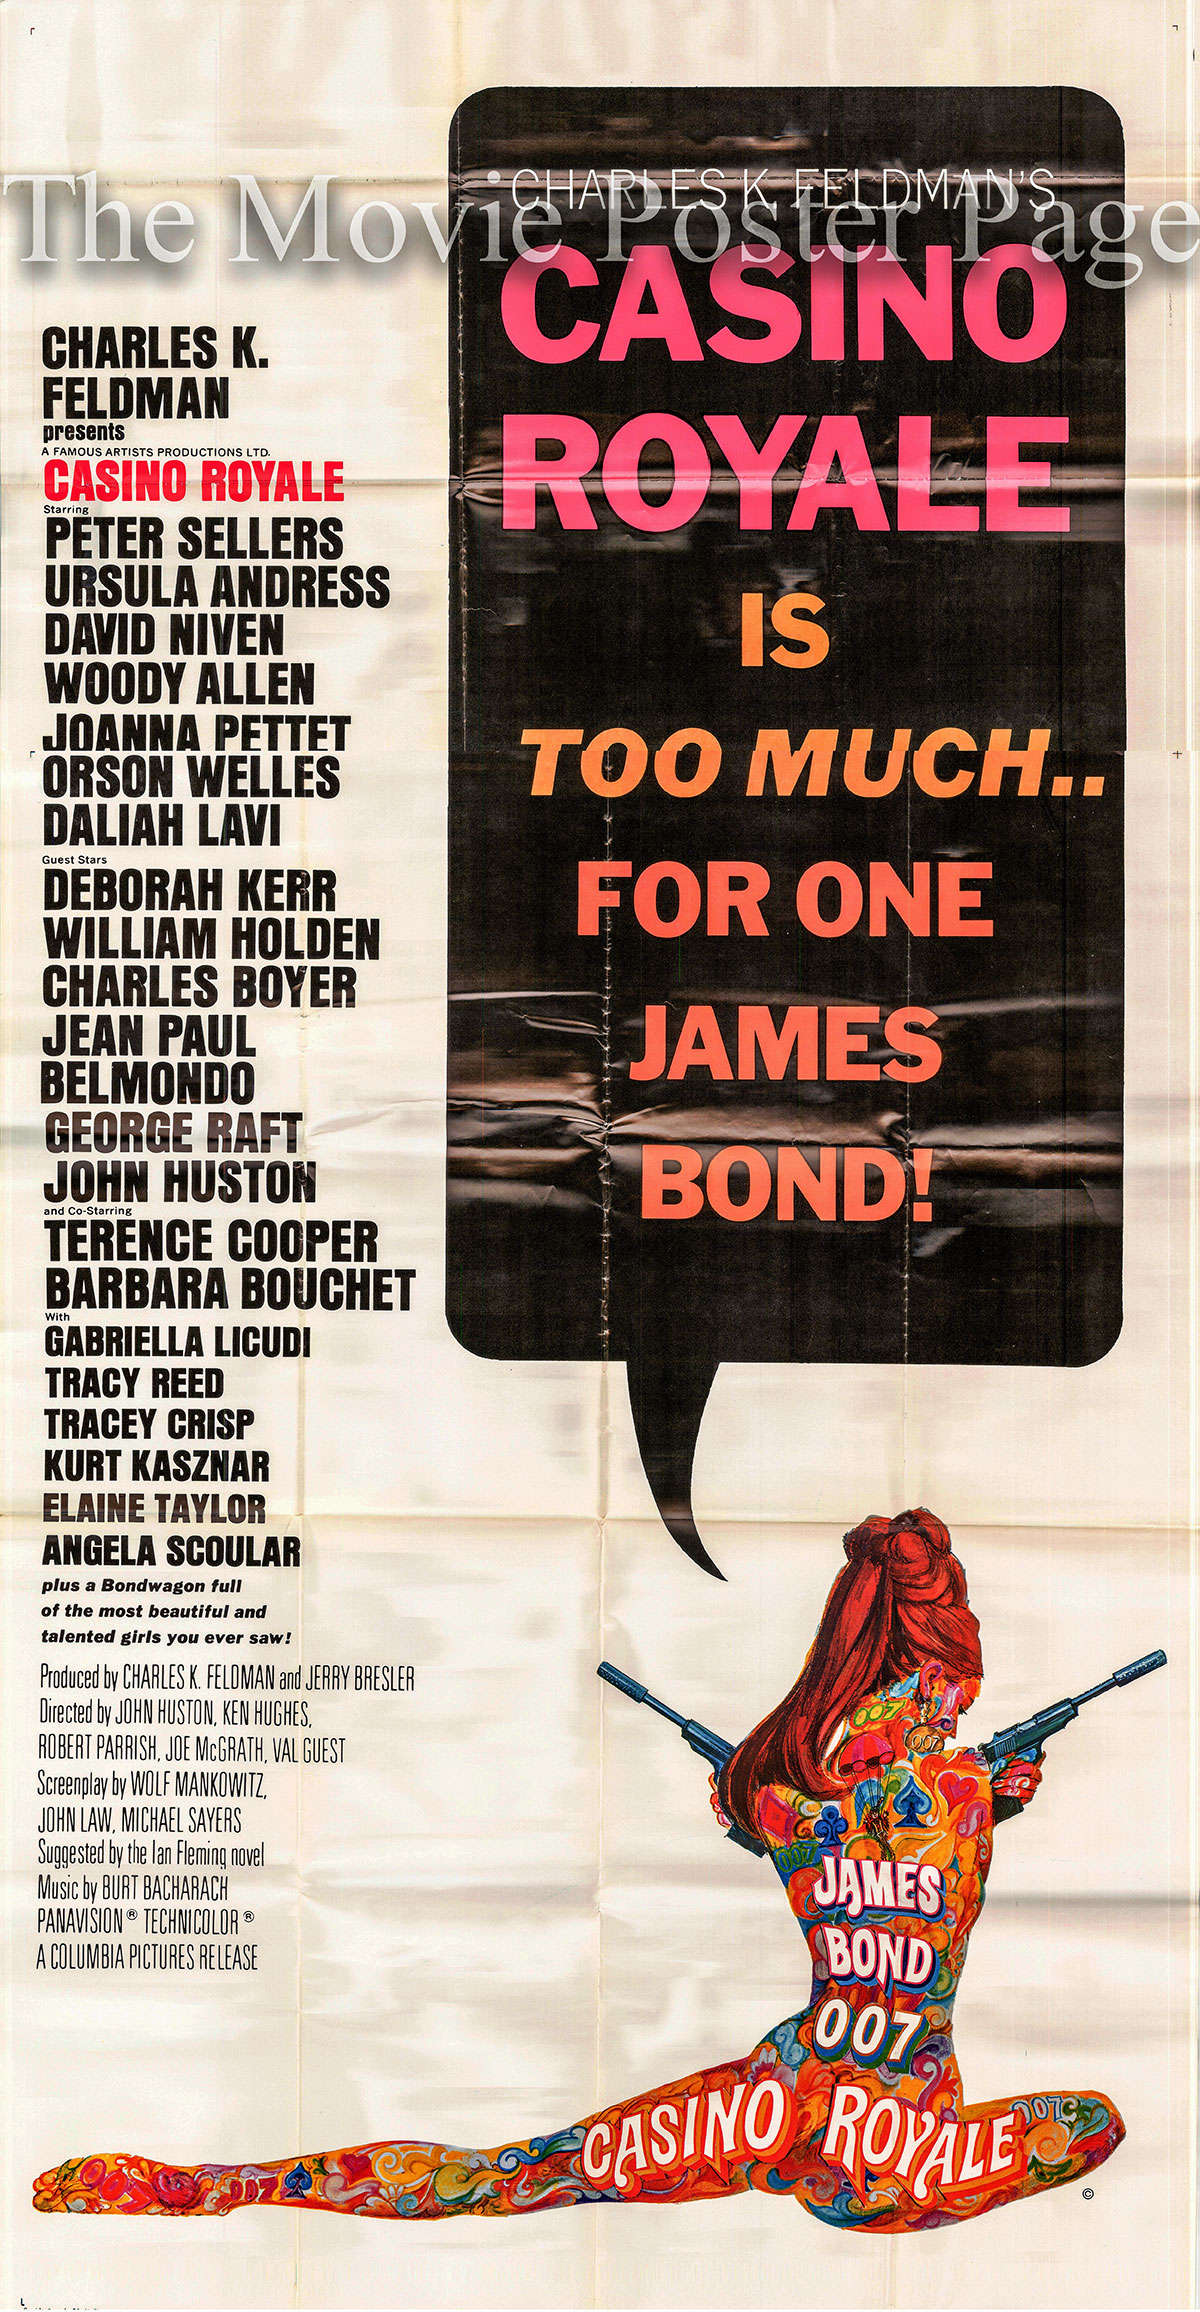 This is an image of the US 3-sheet promotional poster for the 1967 Charles K. Feldman Film Casono Royale, starring Woody Allen and Peter Sellers.